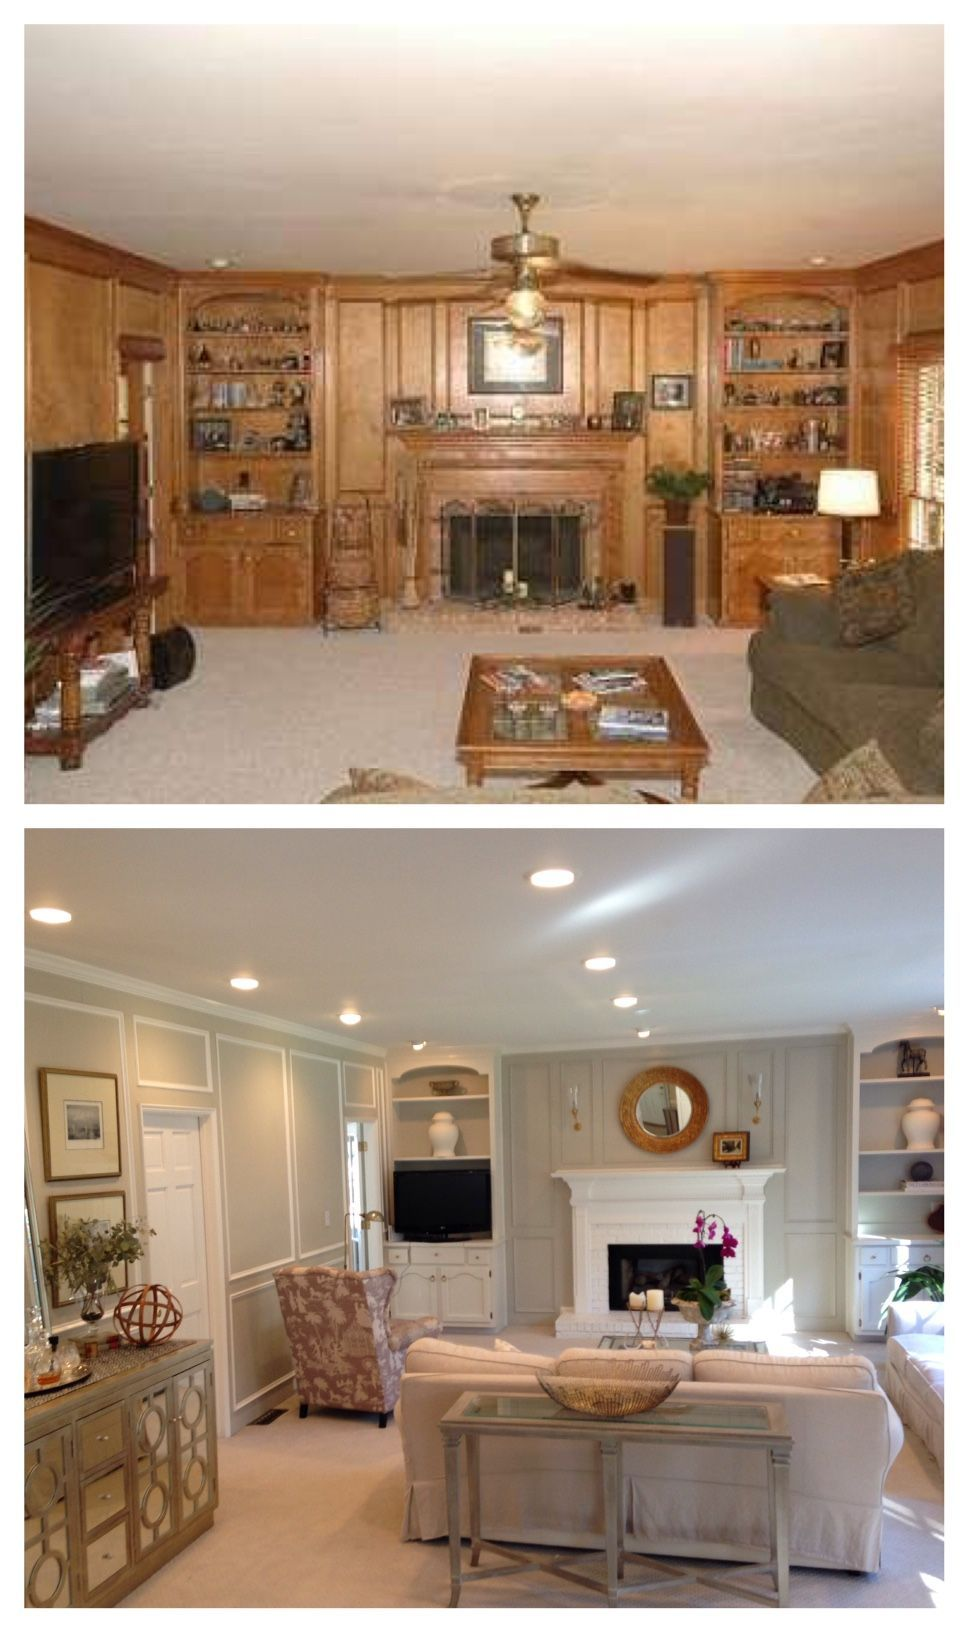 Wood Paneled Room Design: Living Room Before And After. Paneling Painted, Updated